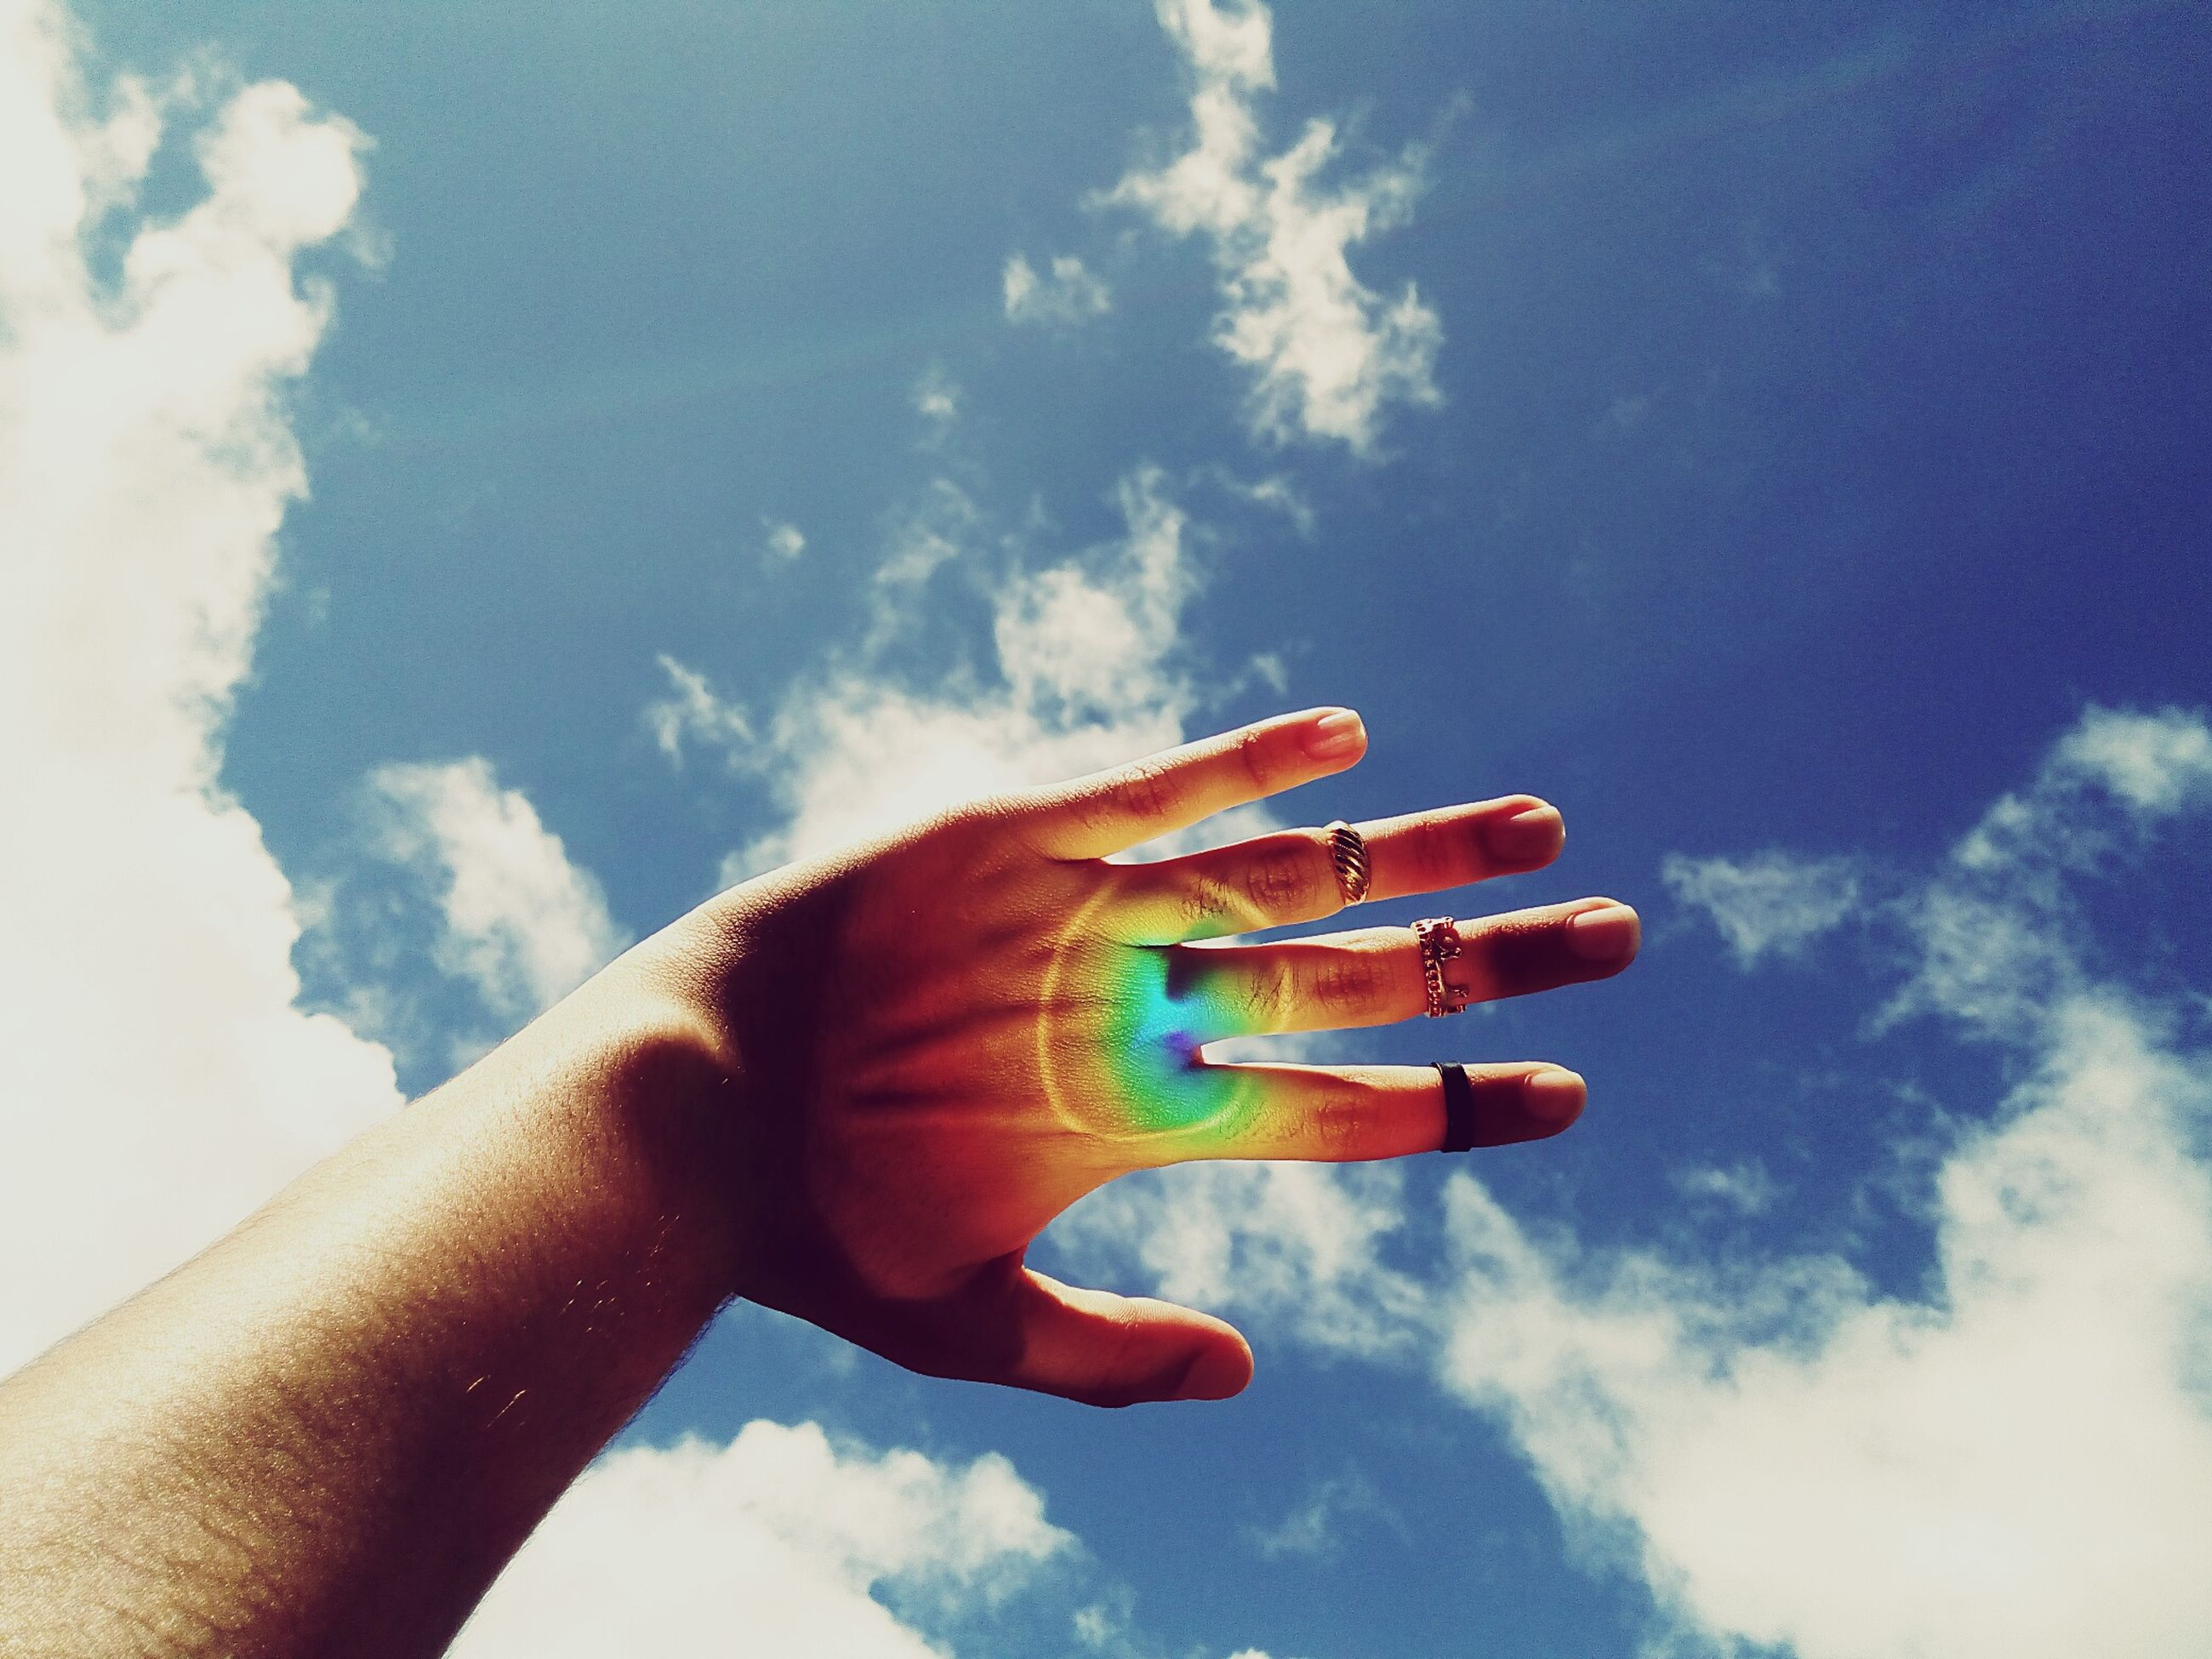 human hand, sky, human body part, cloud - sky, human finger, one person, personal perspective, real people, low angle view, outdoors, blue, day, holding, nature, close-up, beauty in nature, lifestyles, women, people